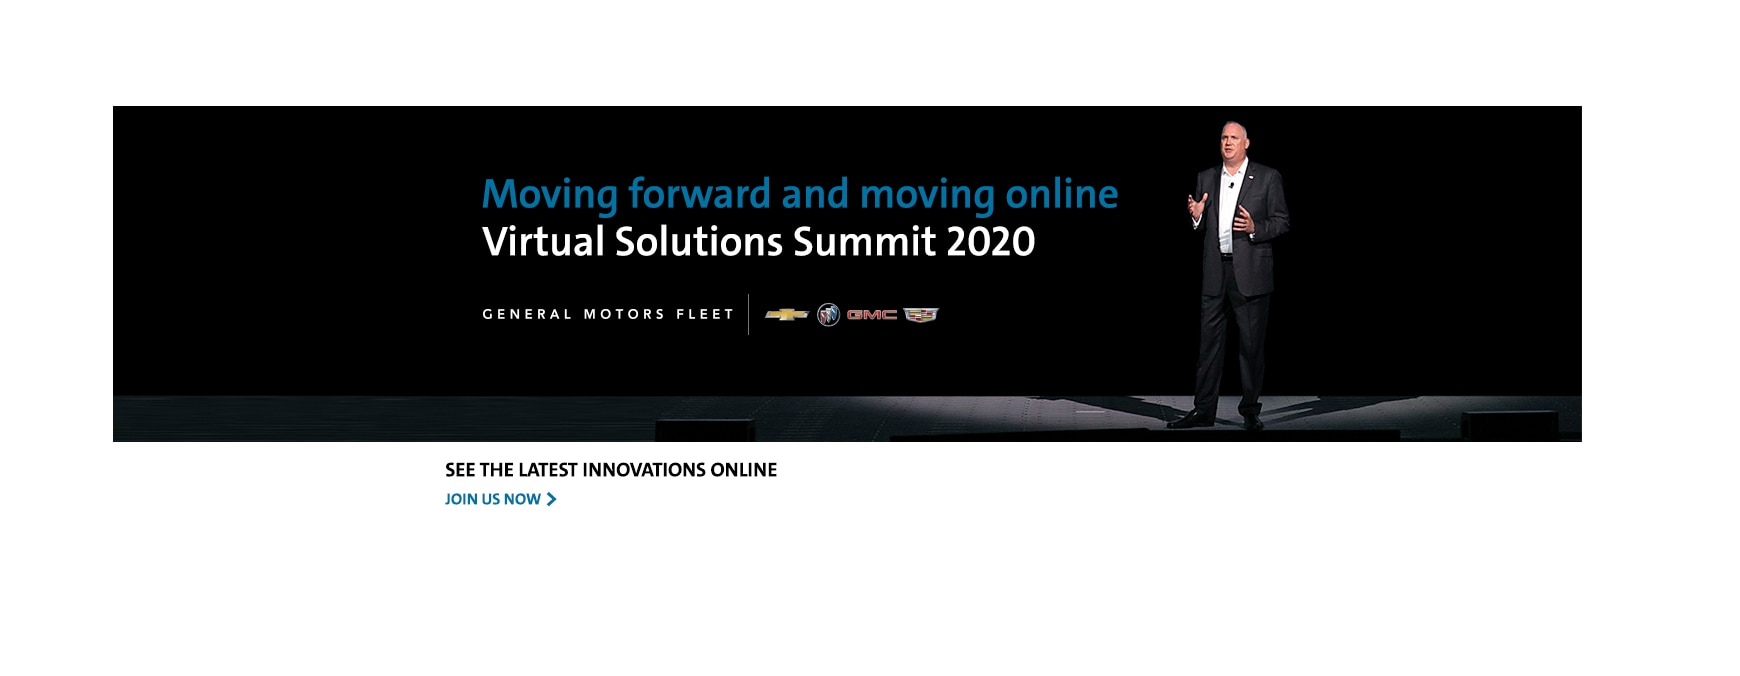 Moving forward and moving online. Virtual Solutions Summit 2020   SEE THE LATEST INNOVATIONS ONLINE. JOIN US NOW.